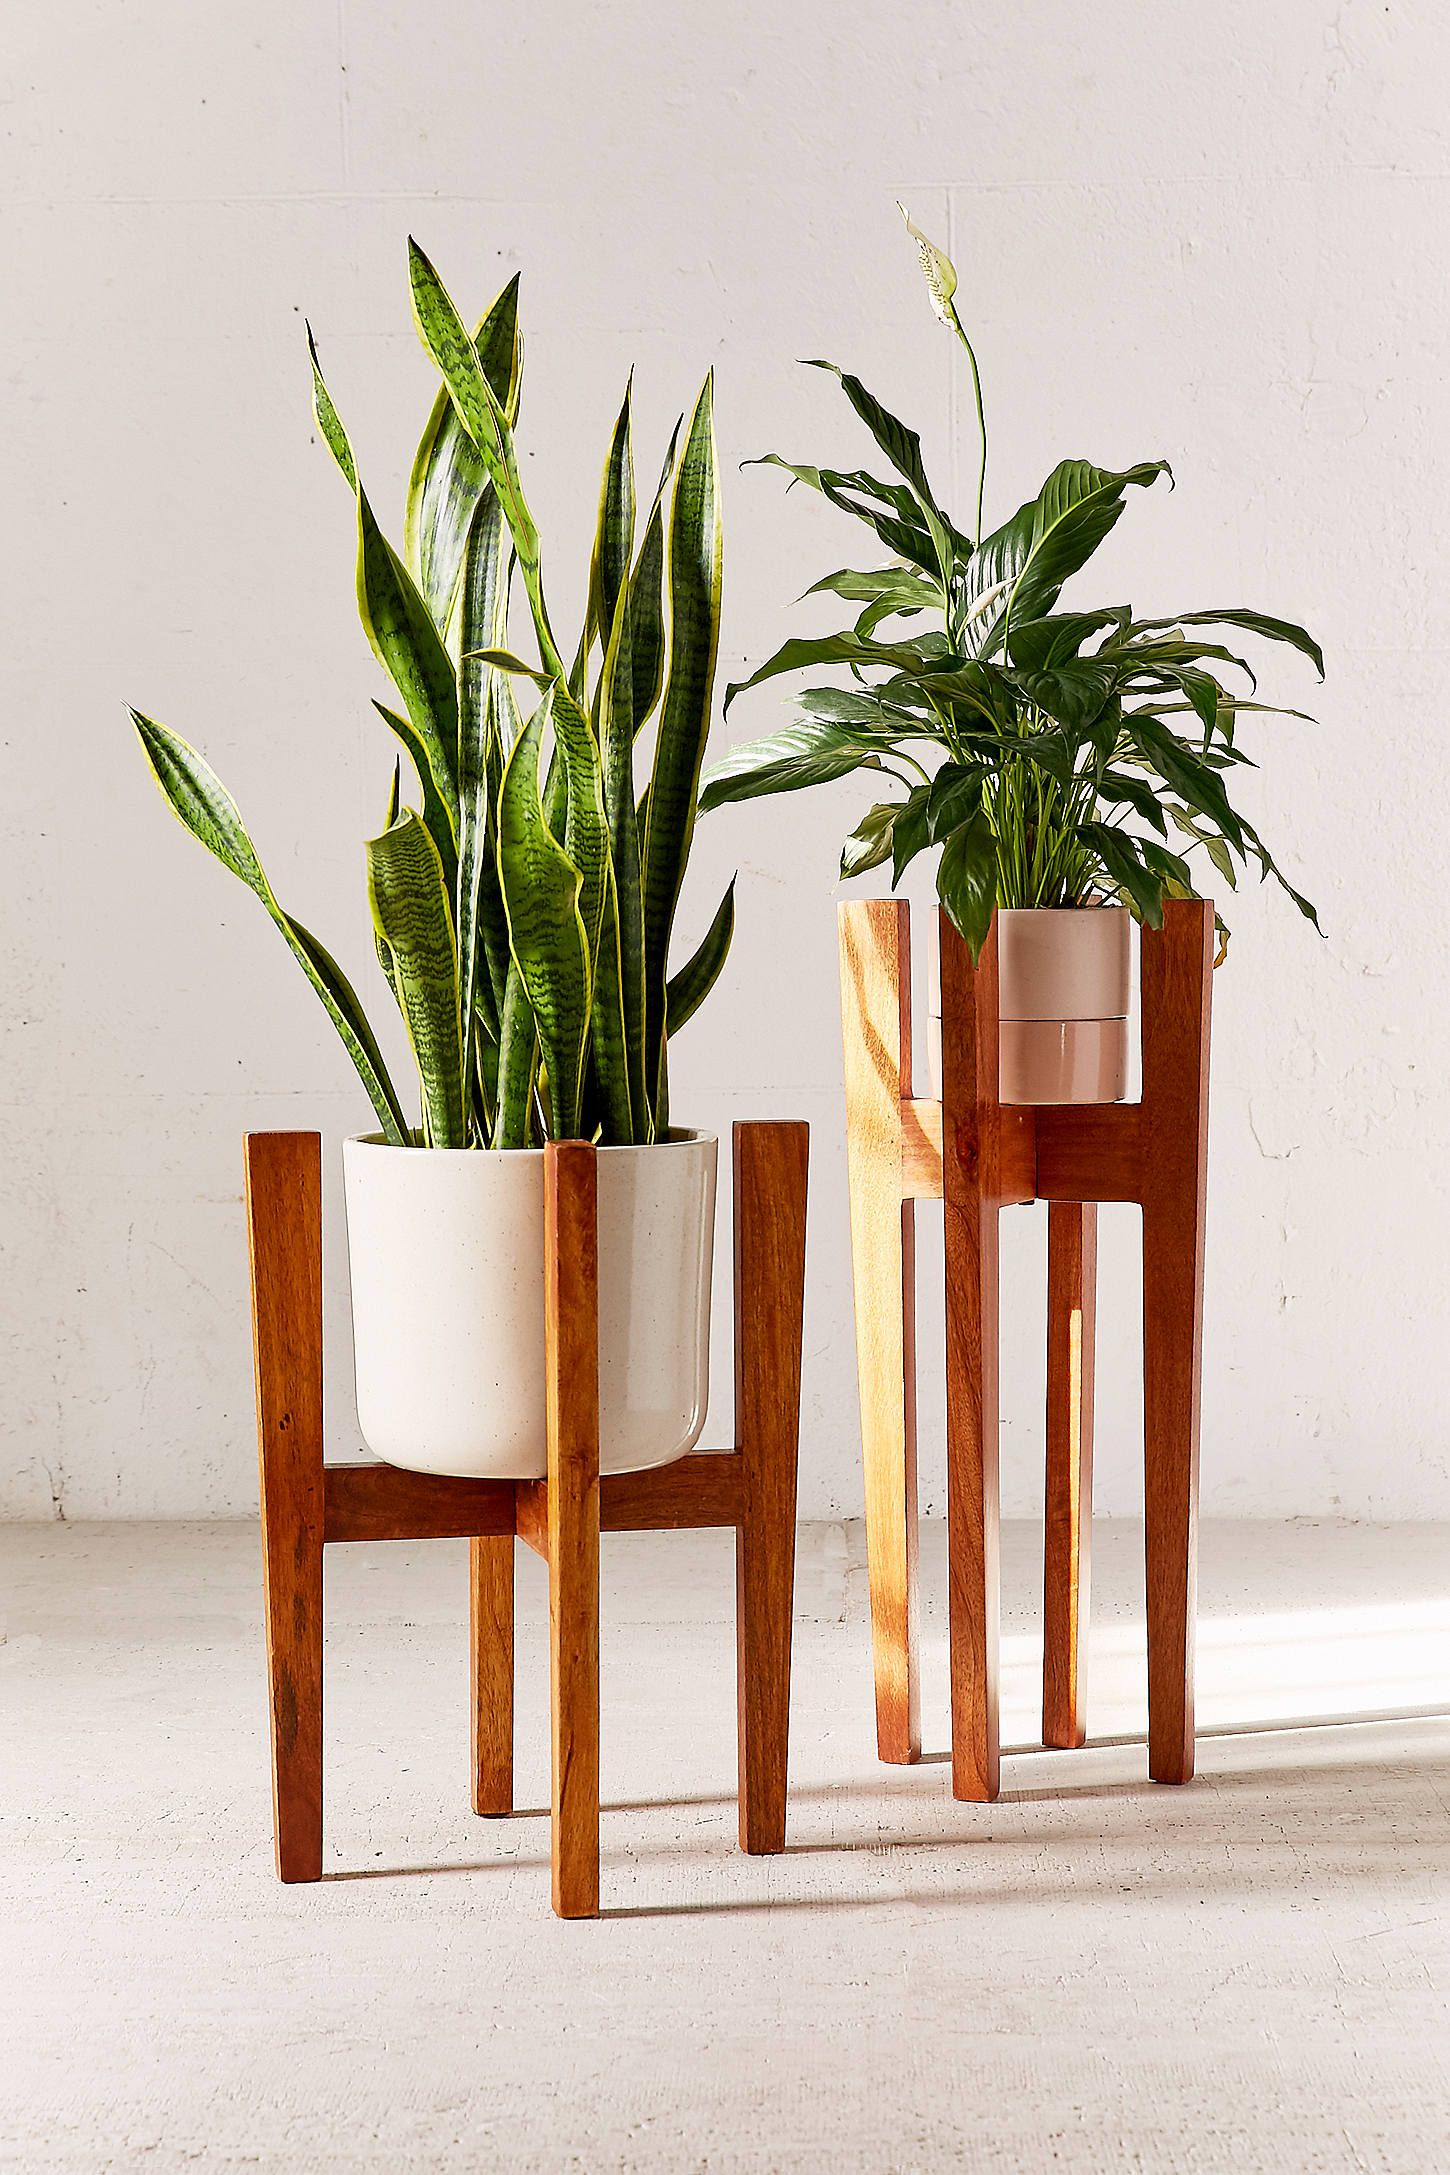 Knock Down Plant Stand (With images) | Plant stand, Plant ... on Hanging Plants Stand Design  id=74407